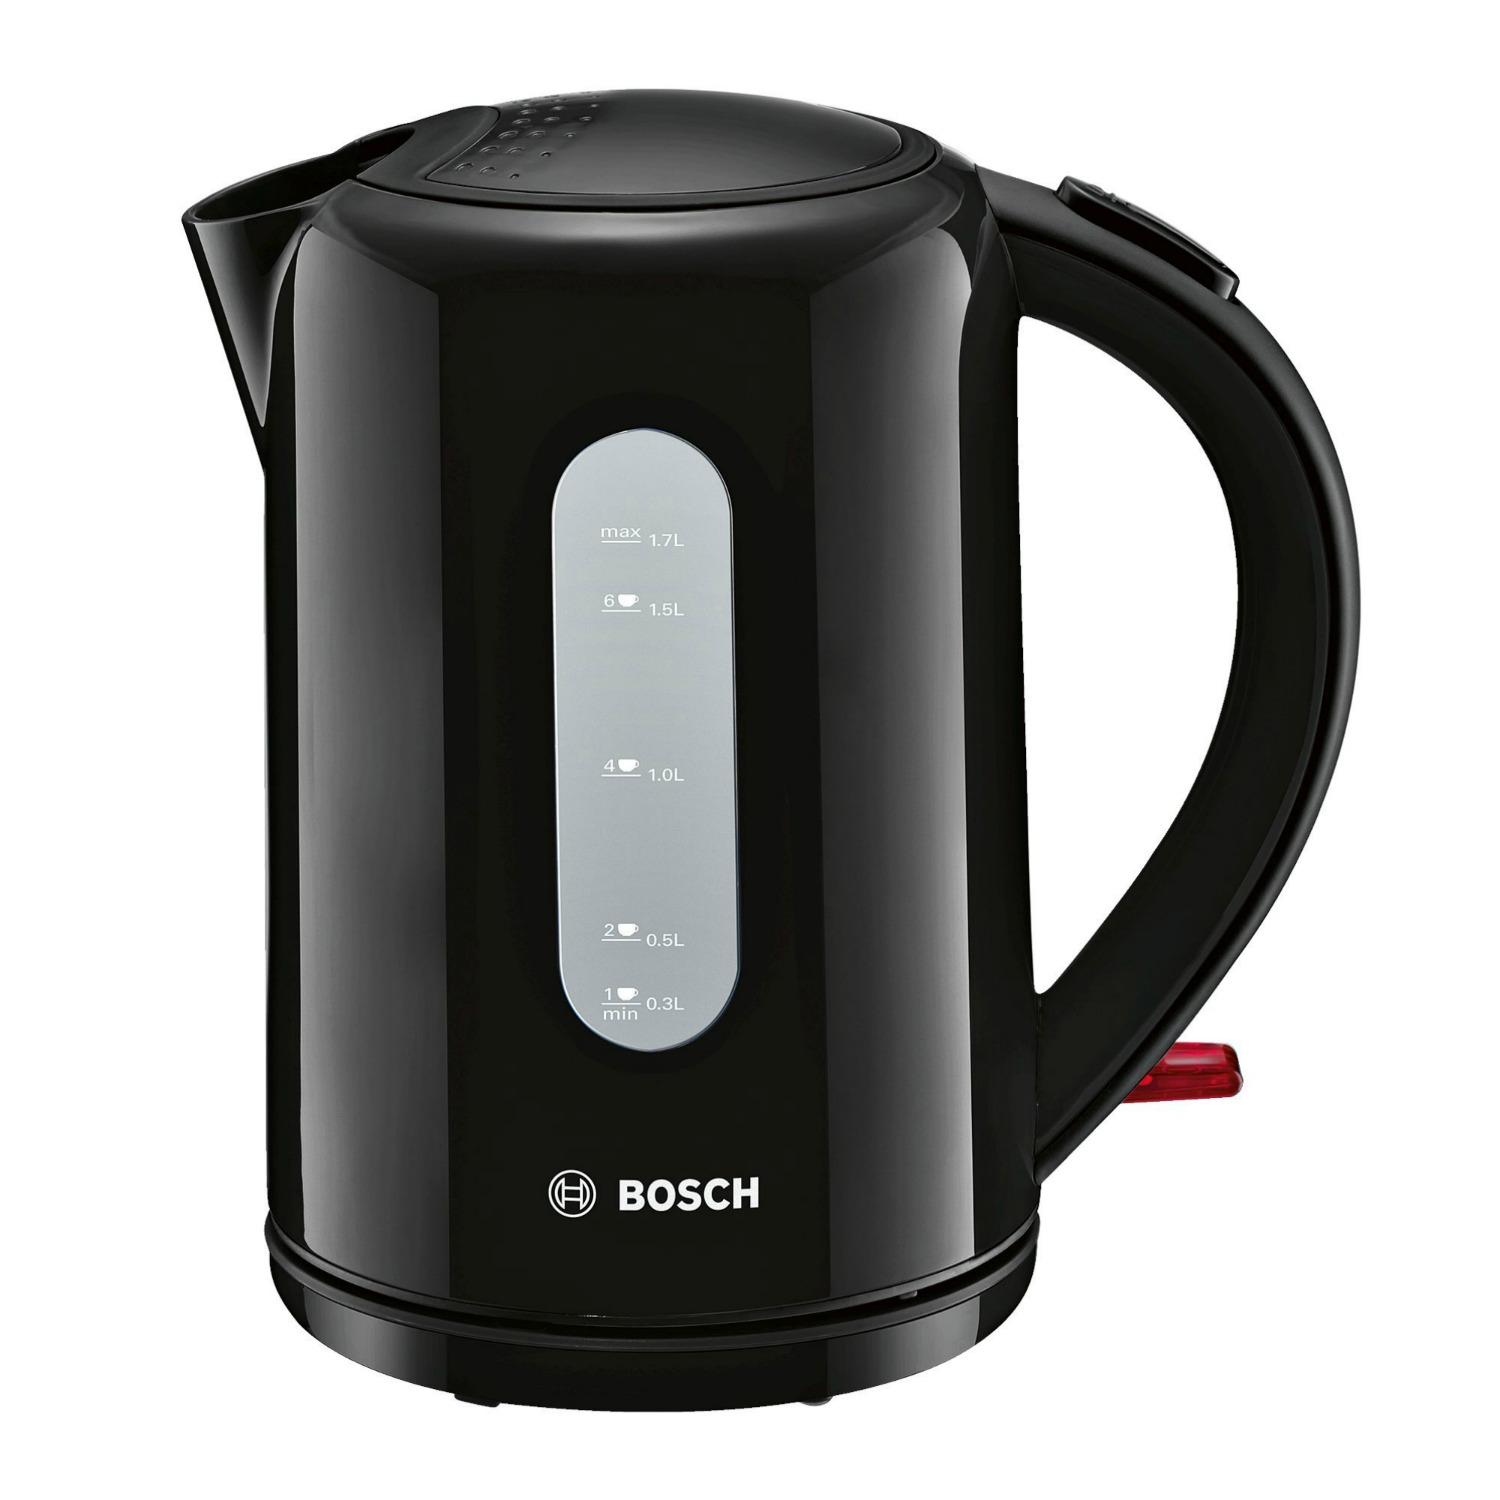 Image of Bosch Cordless Kettle (Colour: Black, Availability: to order. Delivery charge £9.98 for mainland UK or free collection from store.)